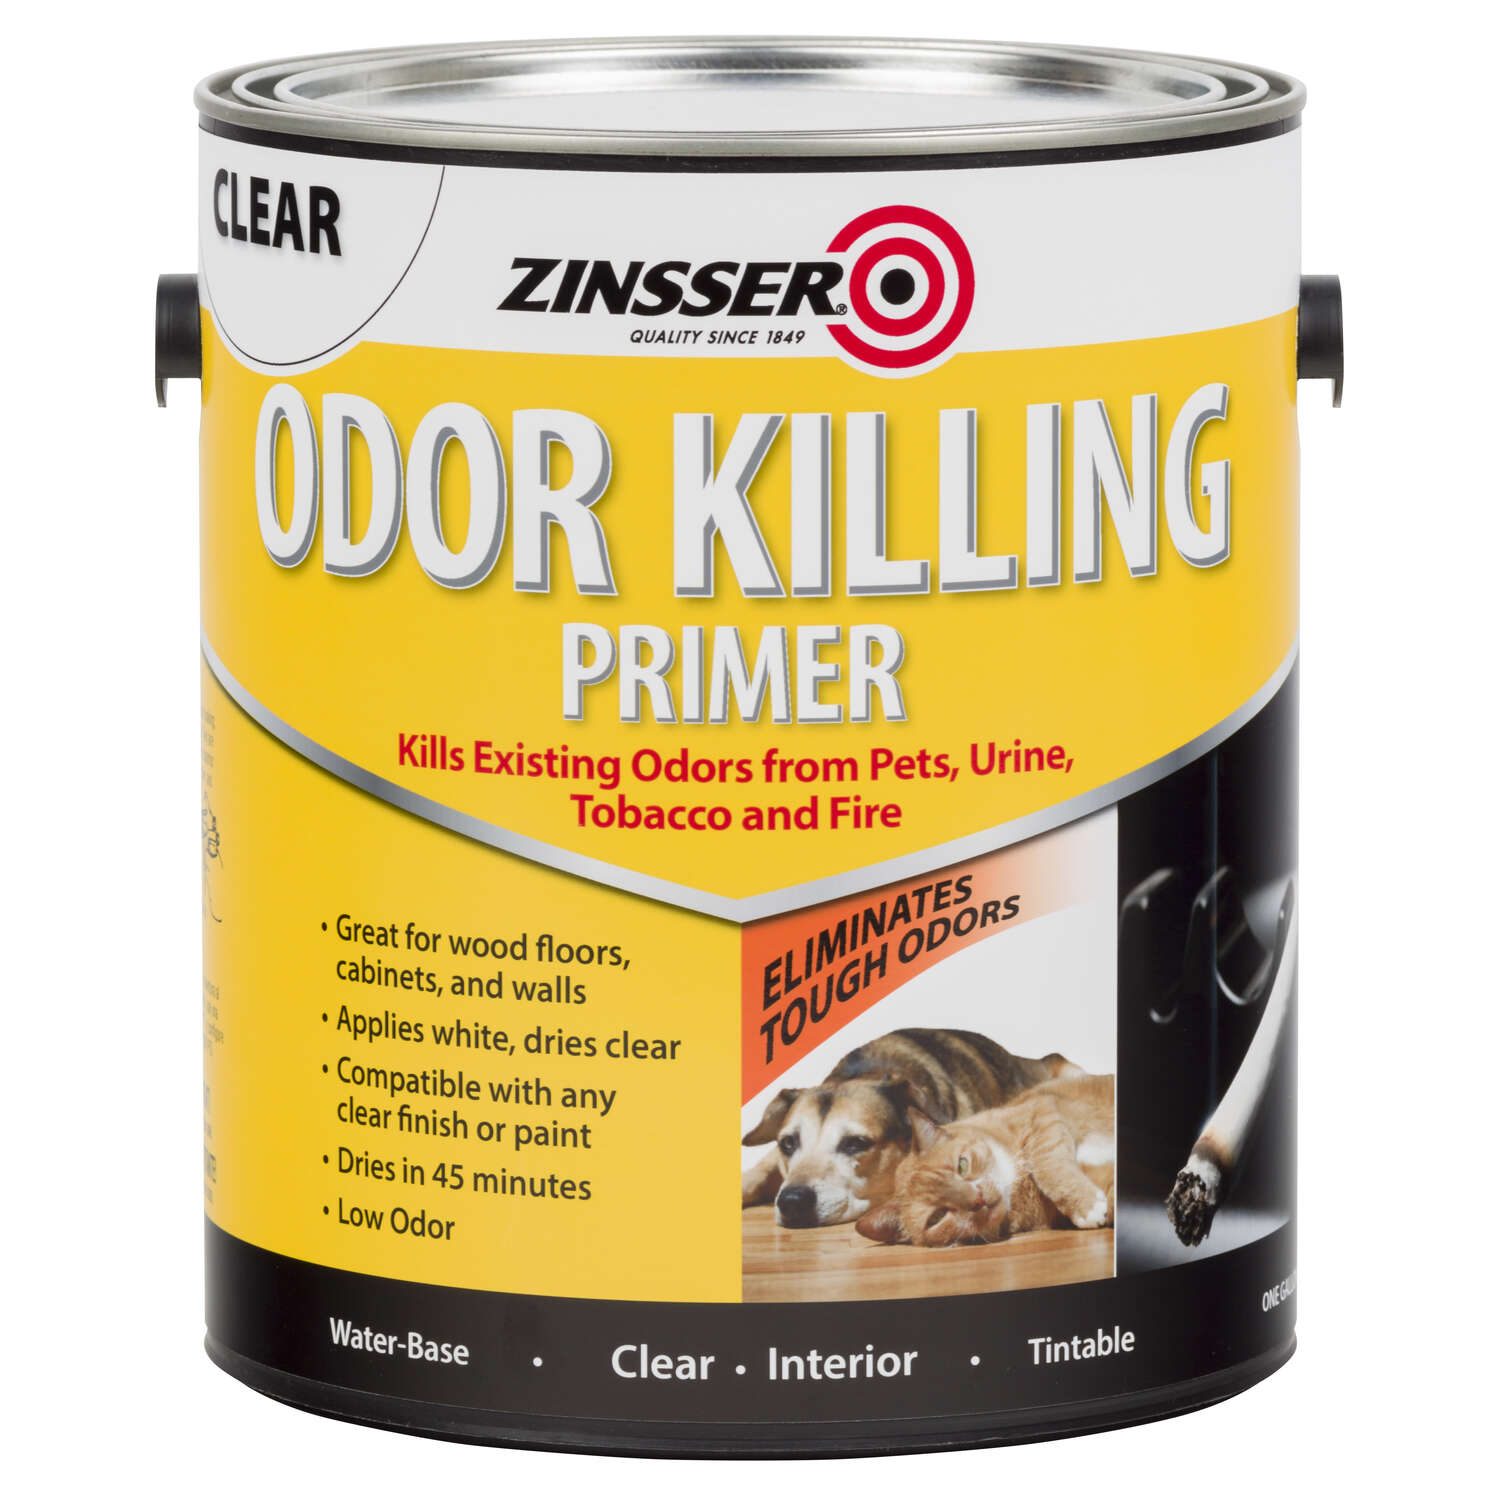 Zinsser  Clear  Water-Based  Acrylic  Odor Killing Primer  1 gal.